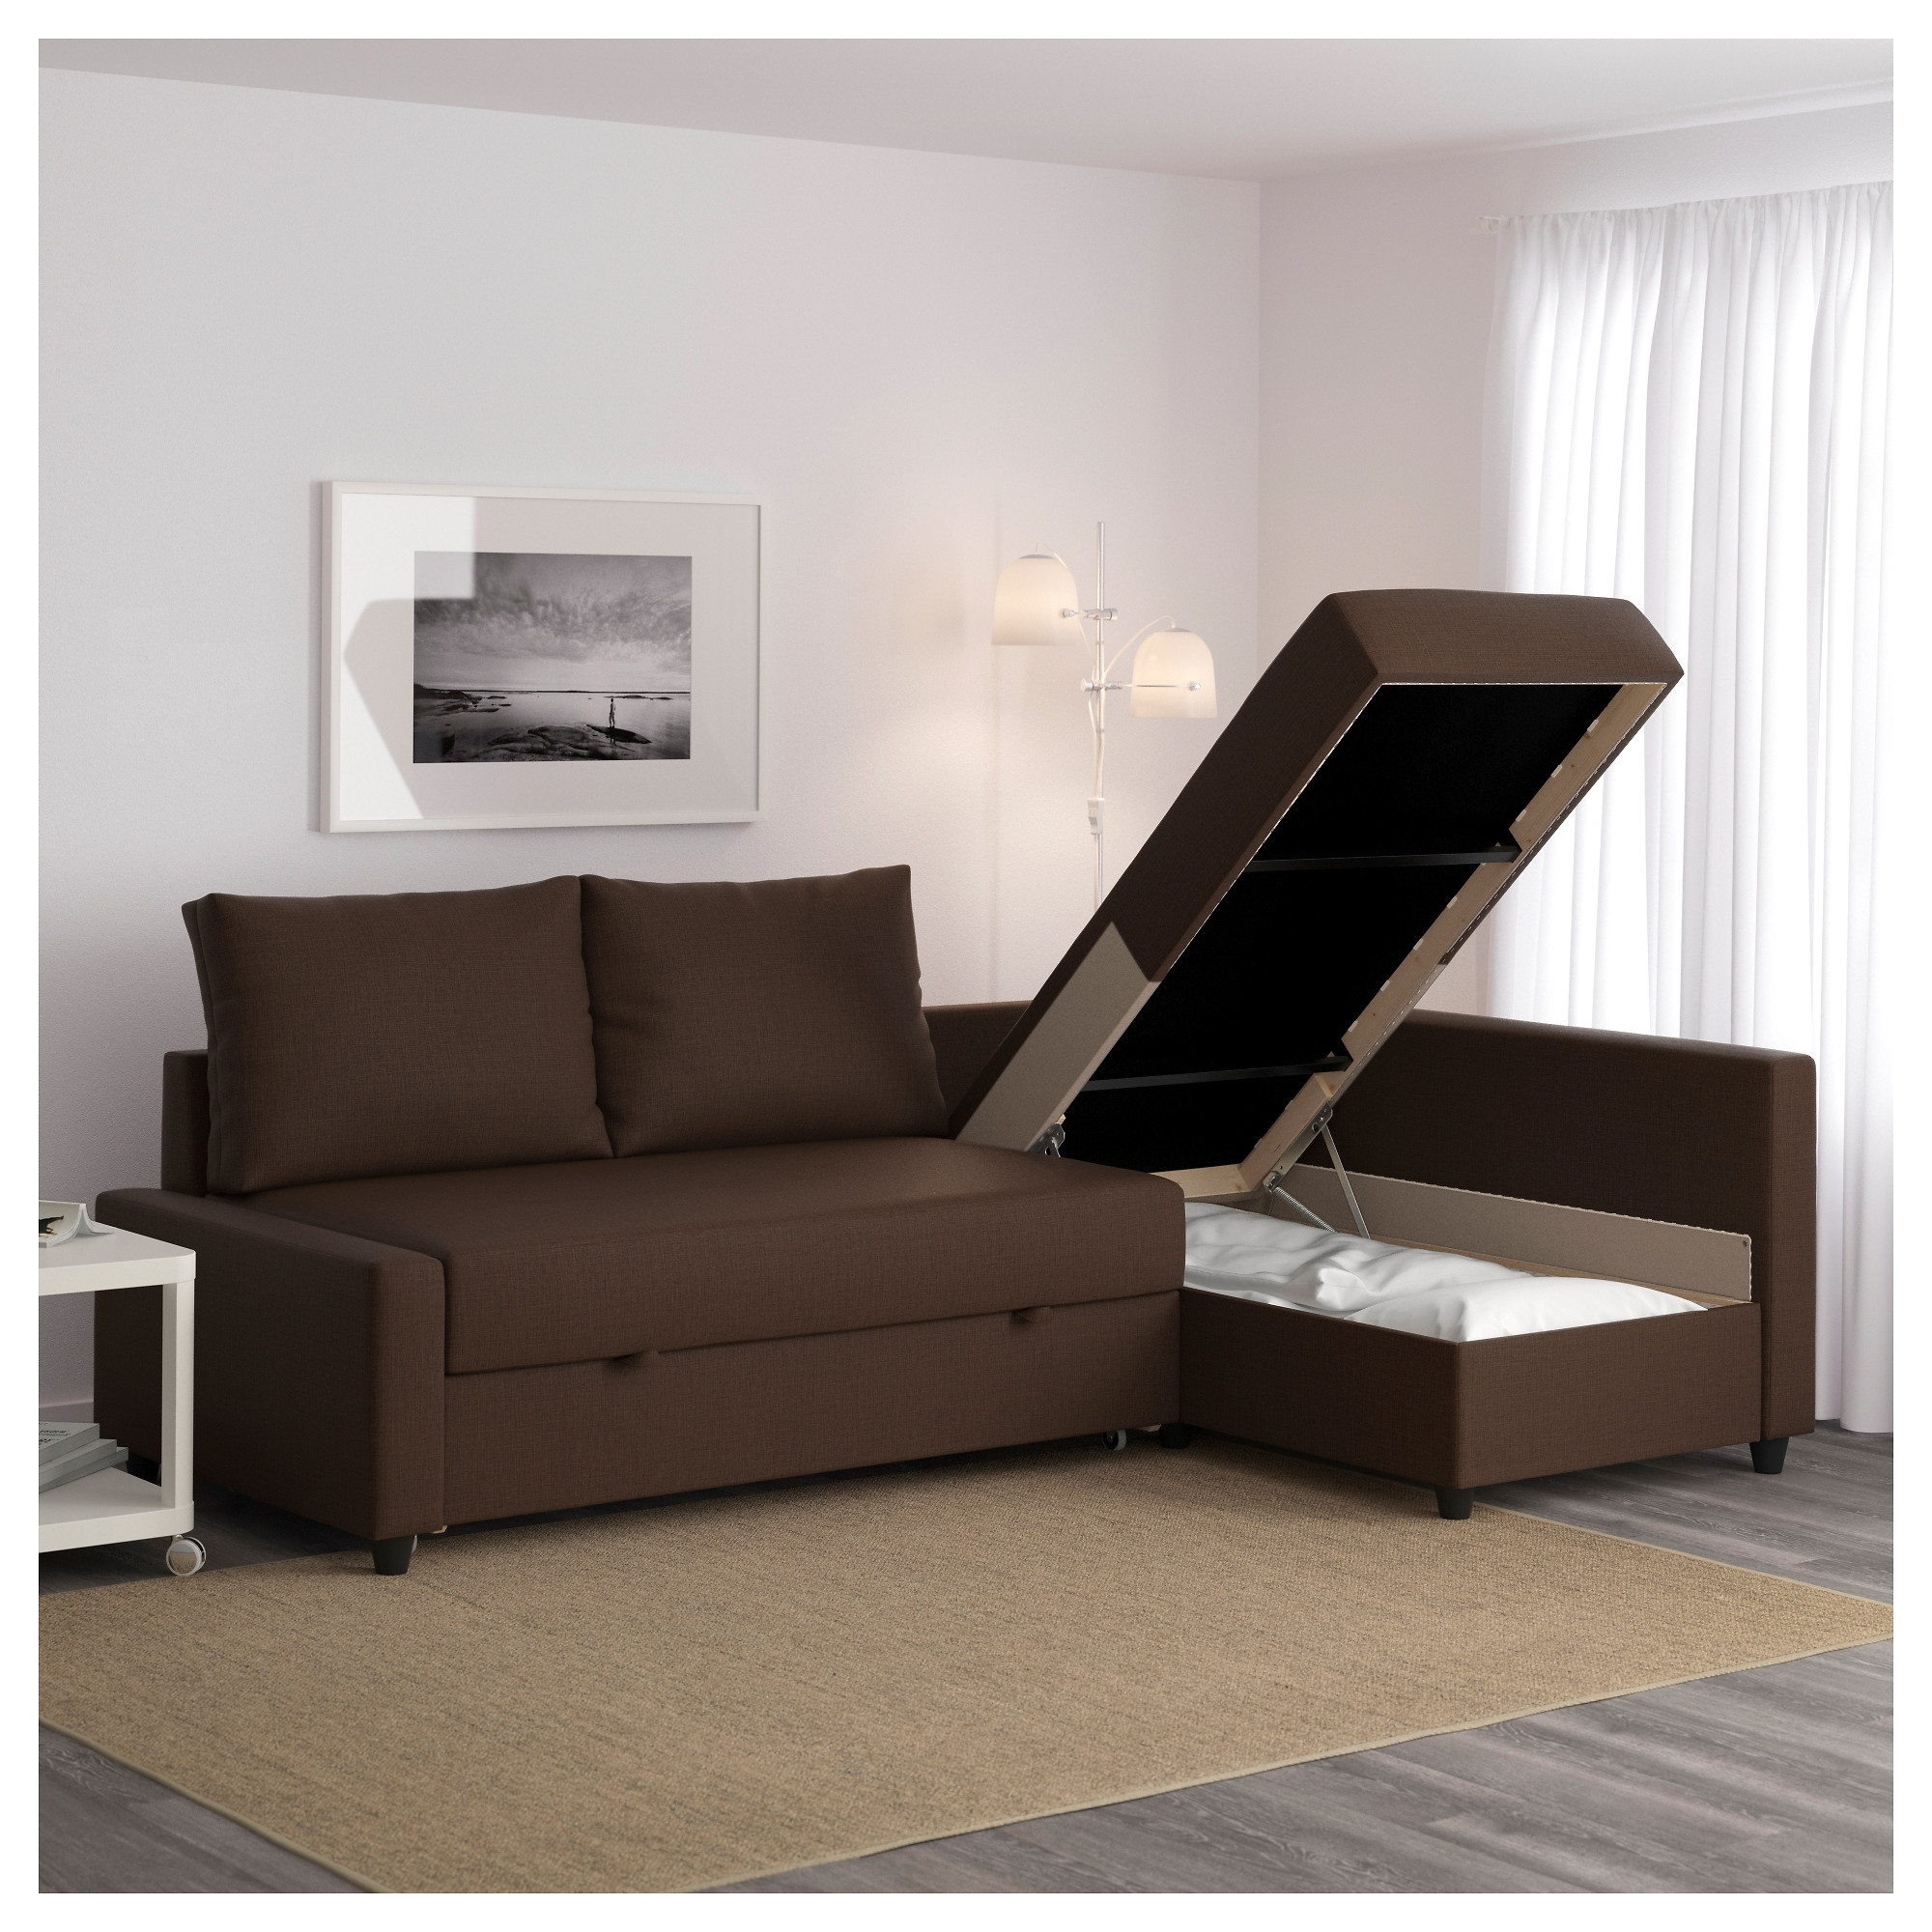 Friheten Corner Sofa Bed With Storage Skiftebo Brown – Ikea For Preferred Ikea Corner Sofas With Storage (View 5 of 20)